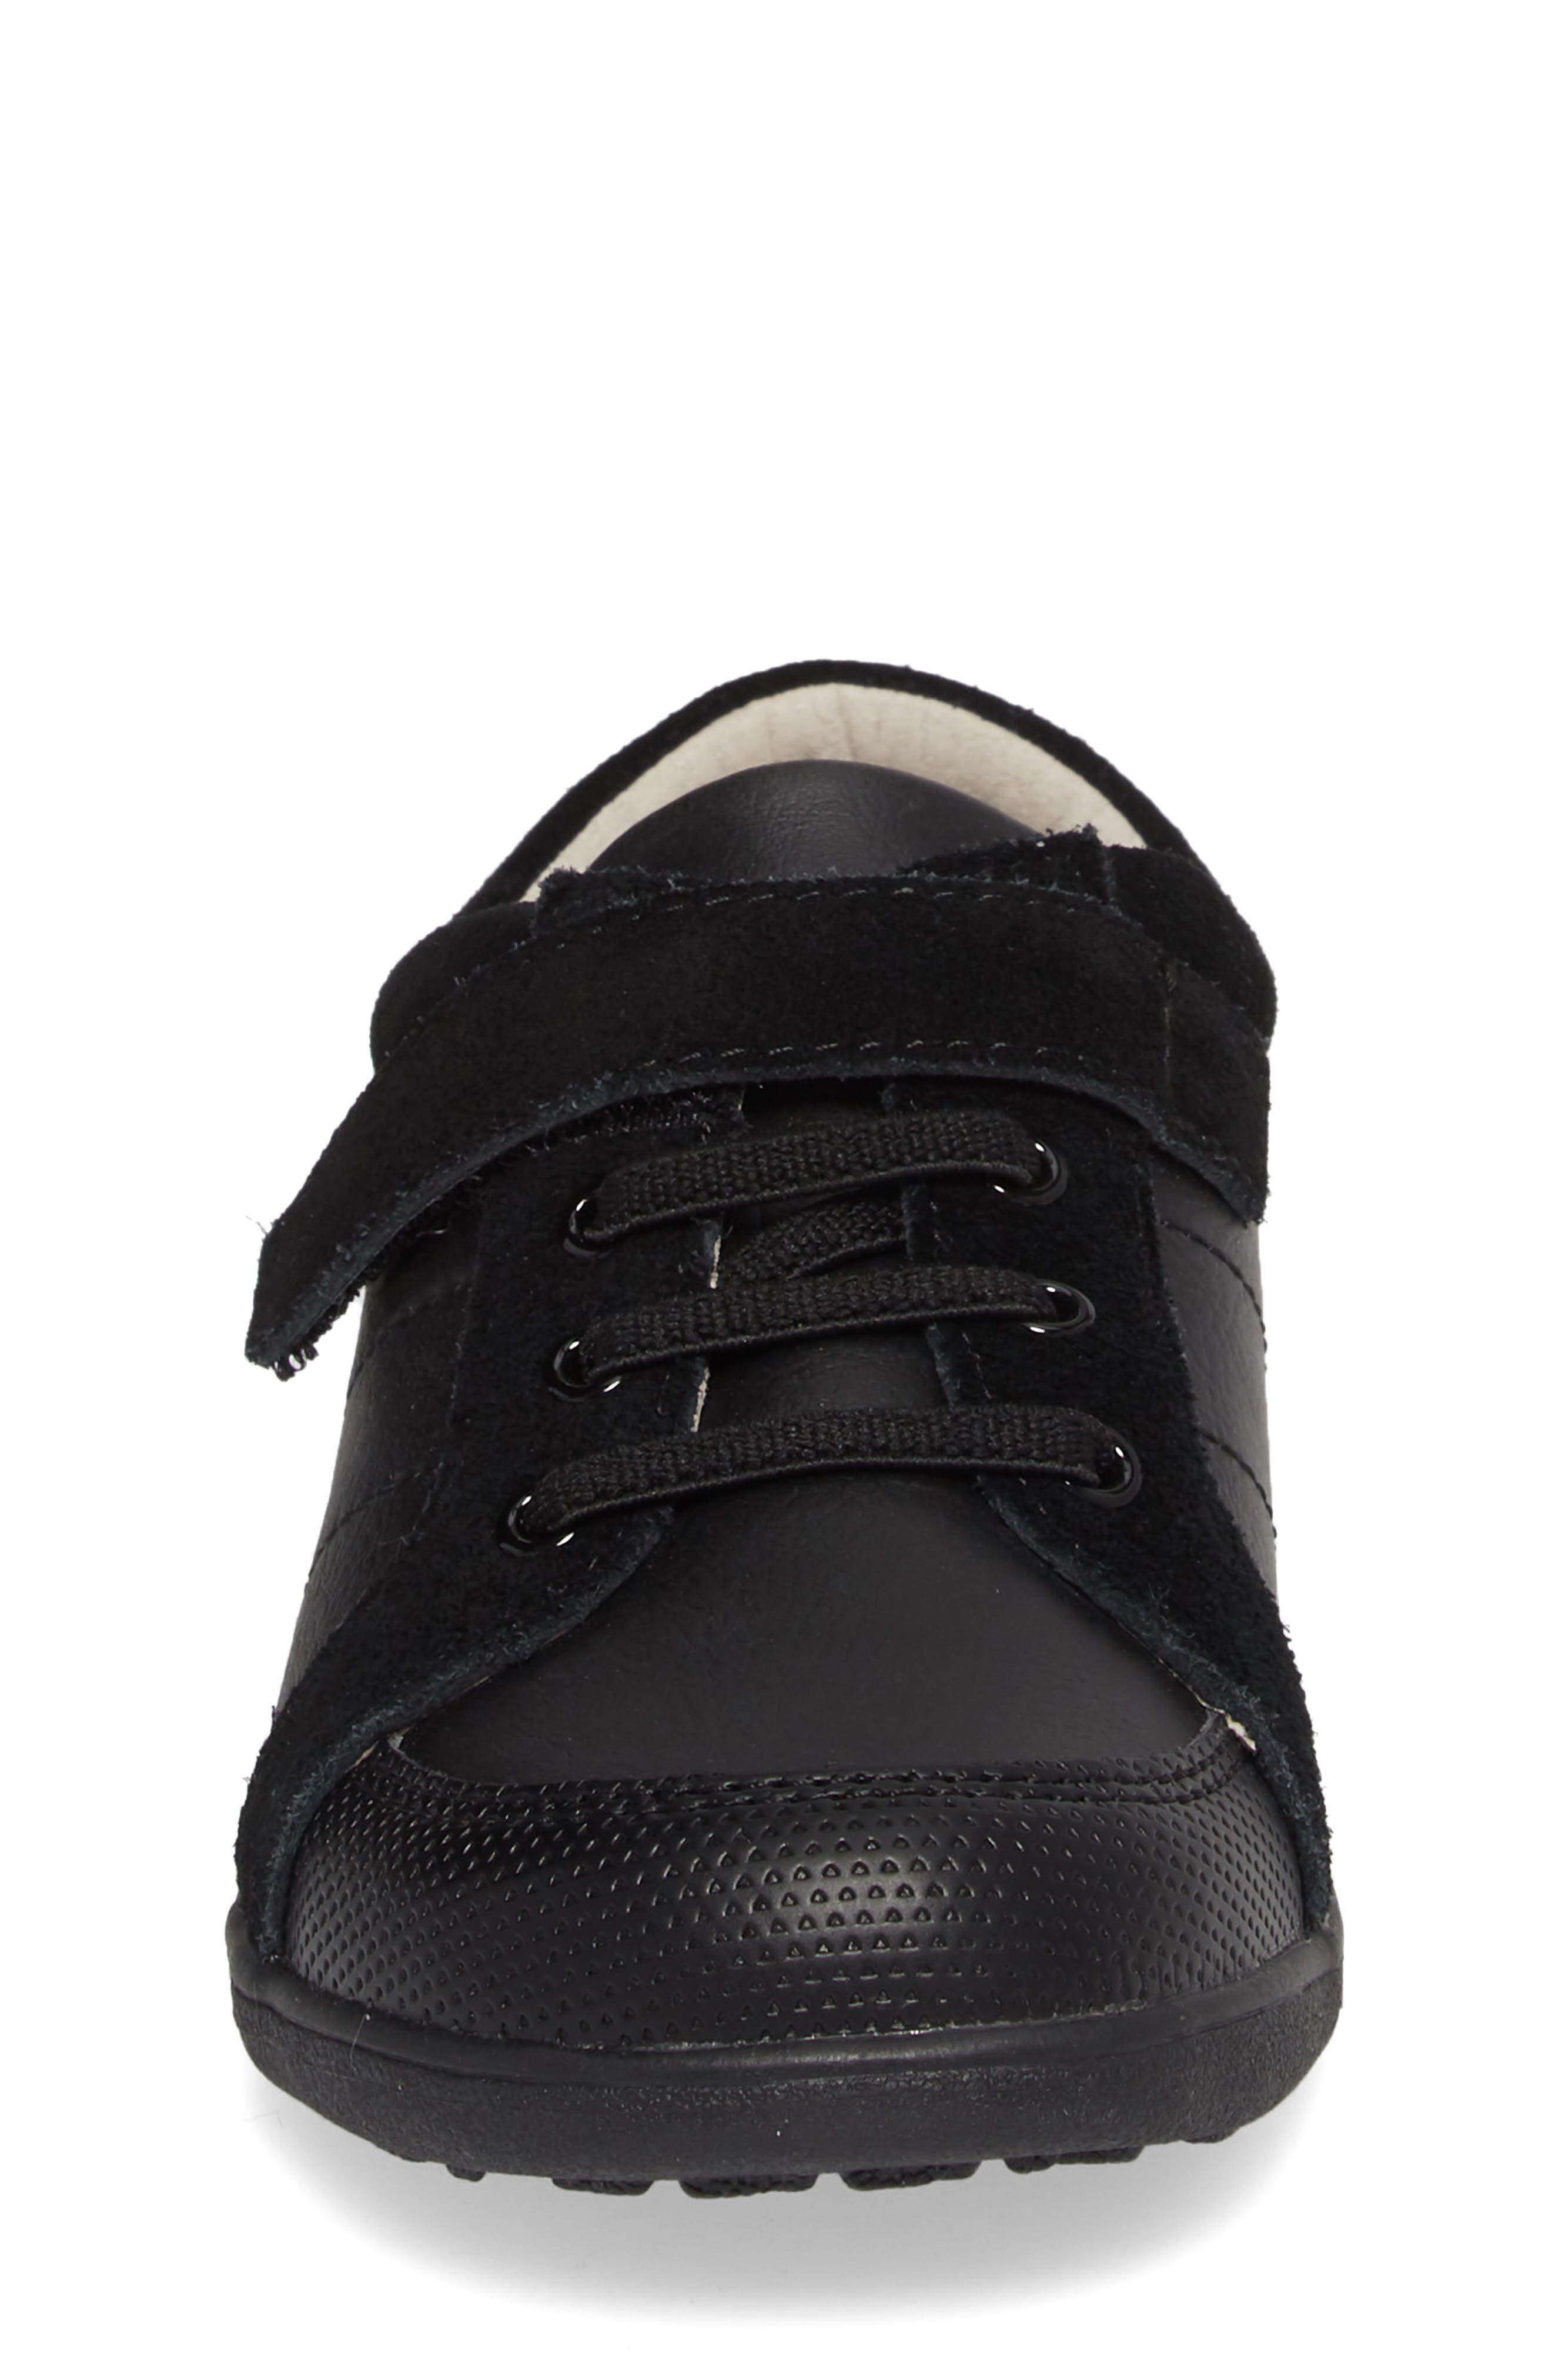 Randal III Sneaker,                             Alternate thumbnail 4, color,                             BLACK